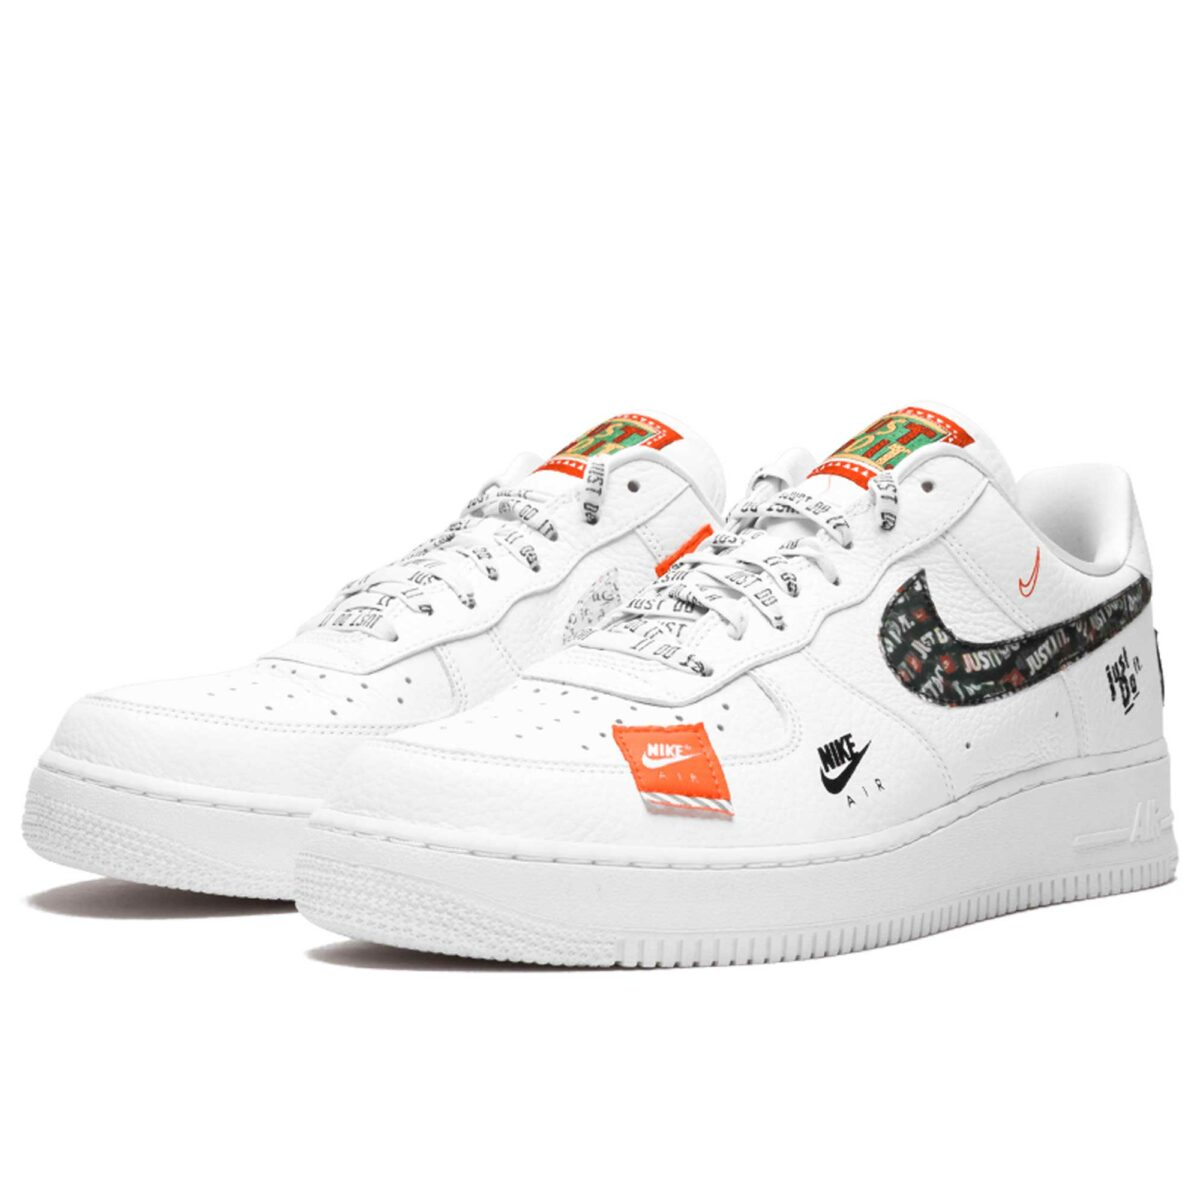 nike air force 1'07 white black total orange AR7719_100 купить